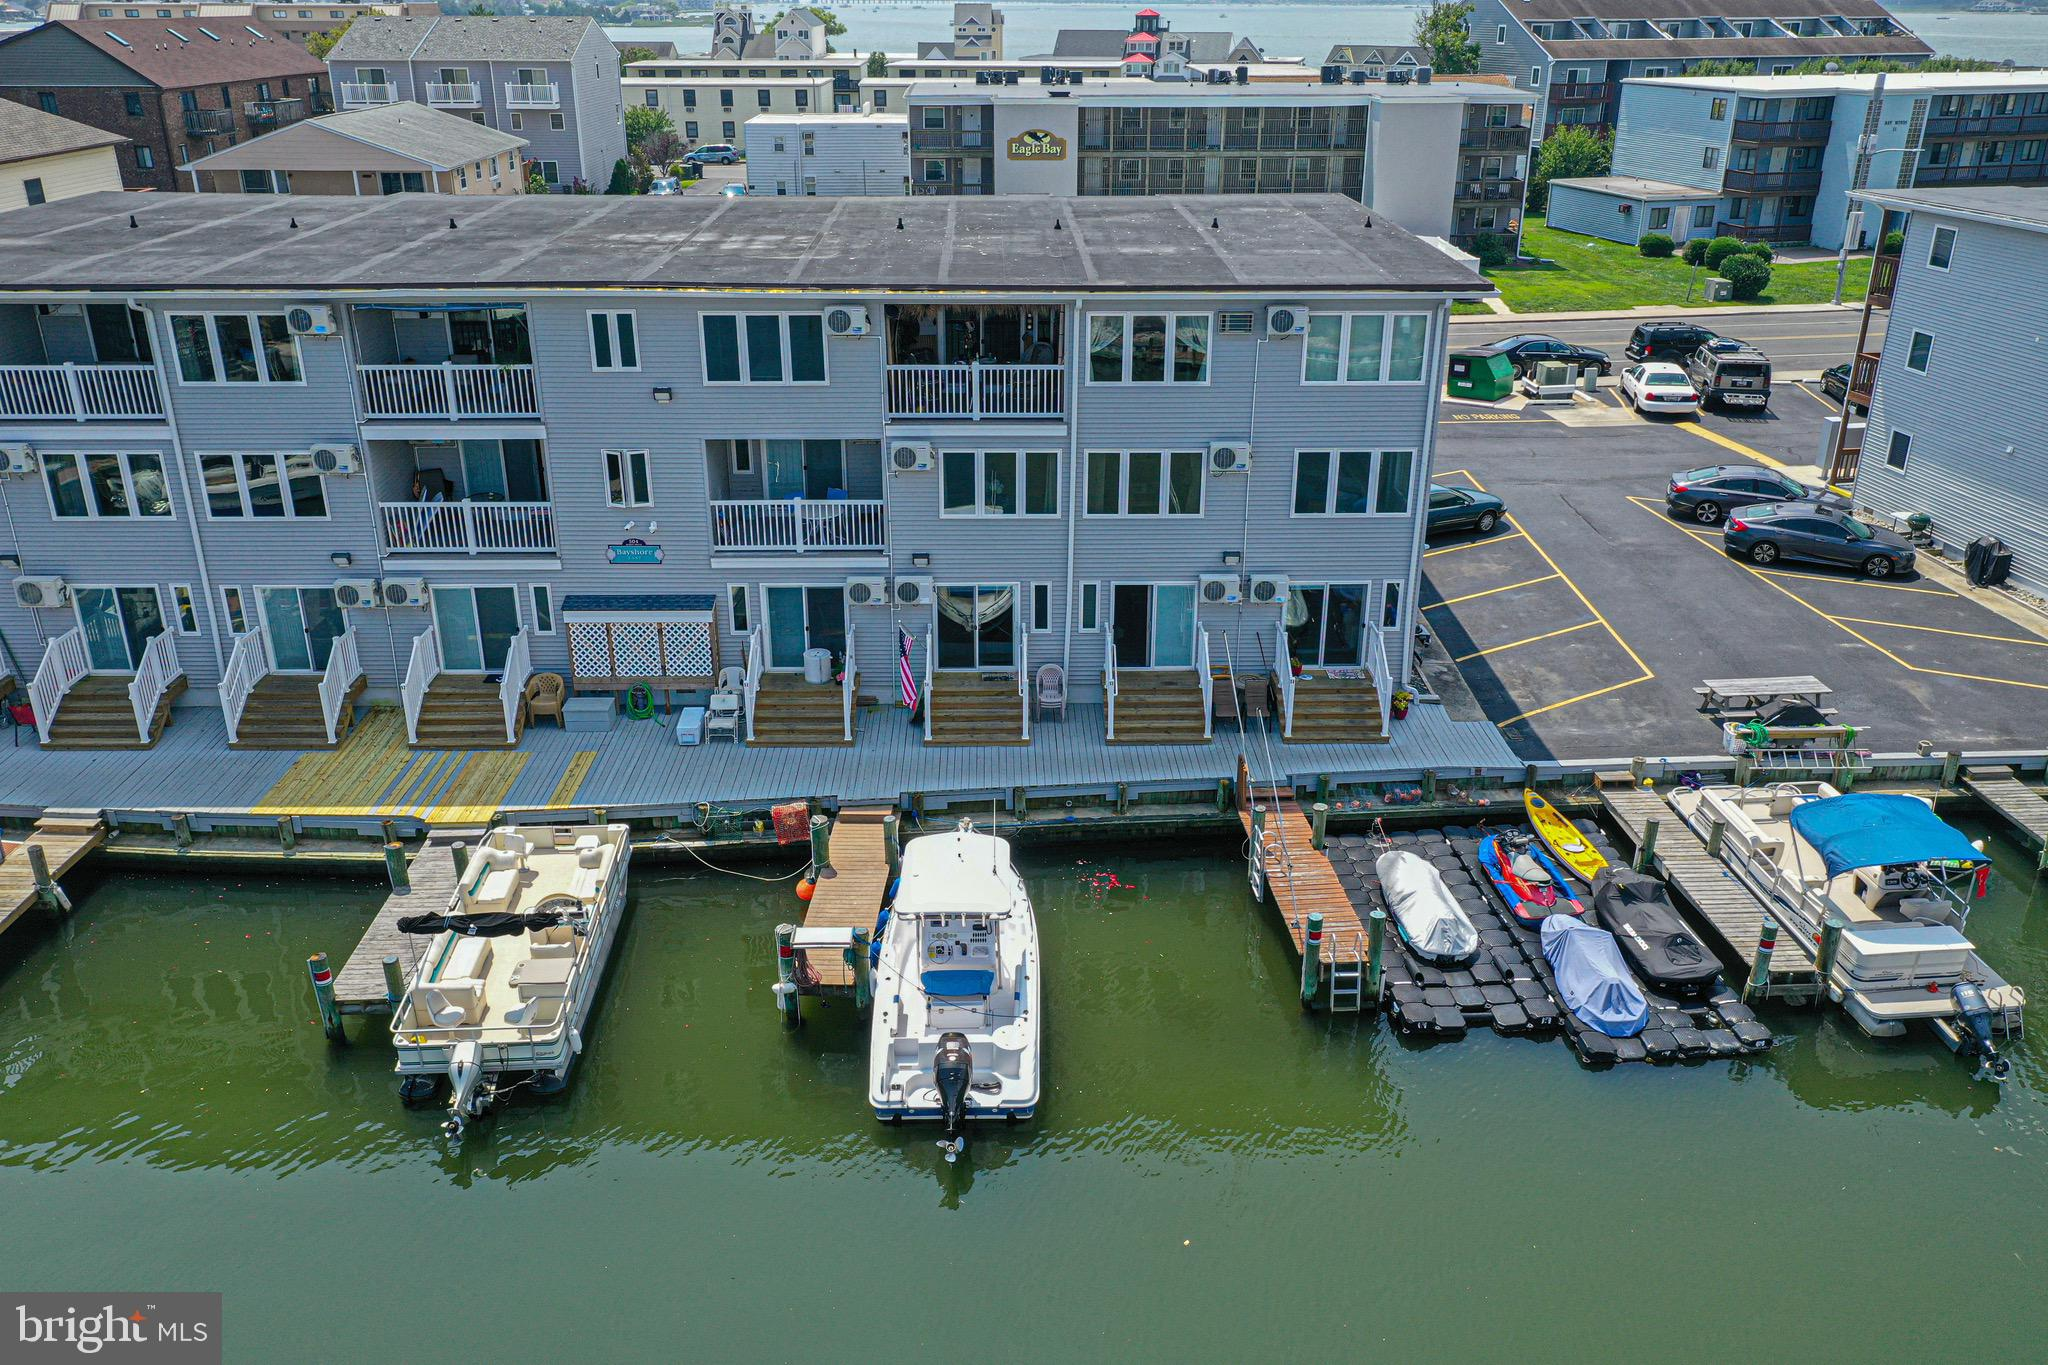 Rare find! Prime location in Ocean City, Maryland! Enjoy the best of both worlds! Convenient first floor condo with direct walk-out access to a deeded boat slip (#32), and perfect central location offers a short walk or bike ride to the beach, boardwalk, restaurants, bars, and entertainment such as Jolly Rogers Amusement & Water Park. Enjoy the beautiful views of the water and sunsets! There is also a private boat ramp for Bayshore owners and renters to use that makes dropping your boat or jet skis into the water a breeze. Condo boasts new ductless heating & cooling mini-slit, new vinyl plank flooring, new sliding glass doors with internal mini-blinds, new refrigerator, fully furnished, & plenty of natural light. Recent building renovations include new siding, soffit, gutters, windows, LED lighting, vinyl railings, landscaping, and building security cameras & system. It would make an excellent home for a family, second home getaway at the beach, or could be a great rental property!  There is an assigned storage closet for your beach & boating gear and storage needs within the building. Quarterly condo fees include cable, water, common area maintenance, building flood/wind/hazard insurance, and city water & trash fees.  Seller will pay remaining balance of special assessment  with an acceptable offer.